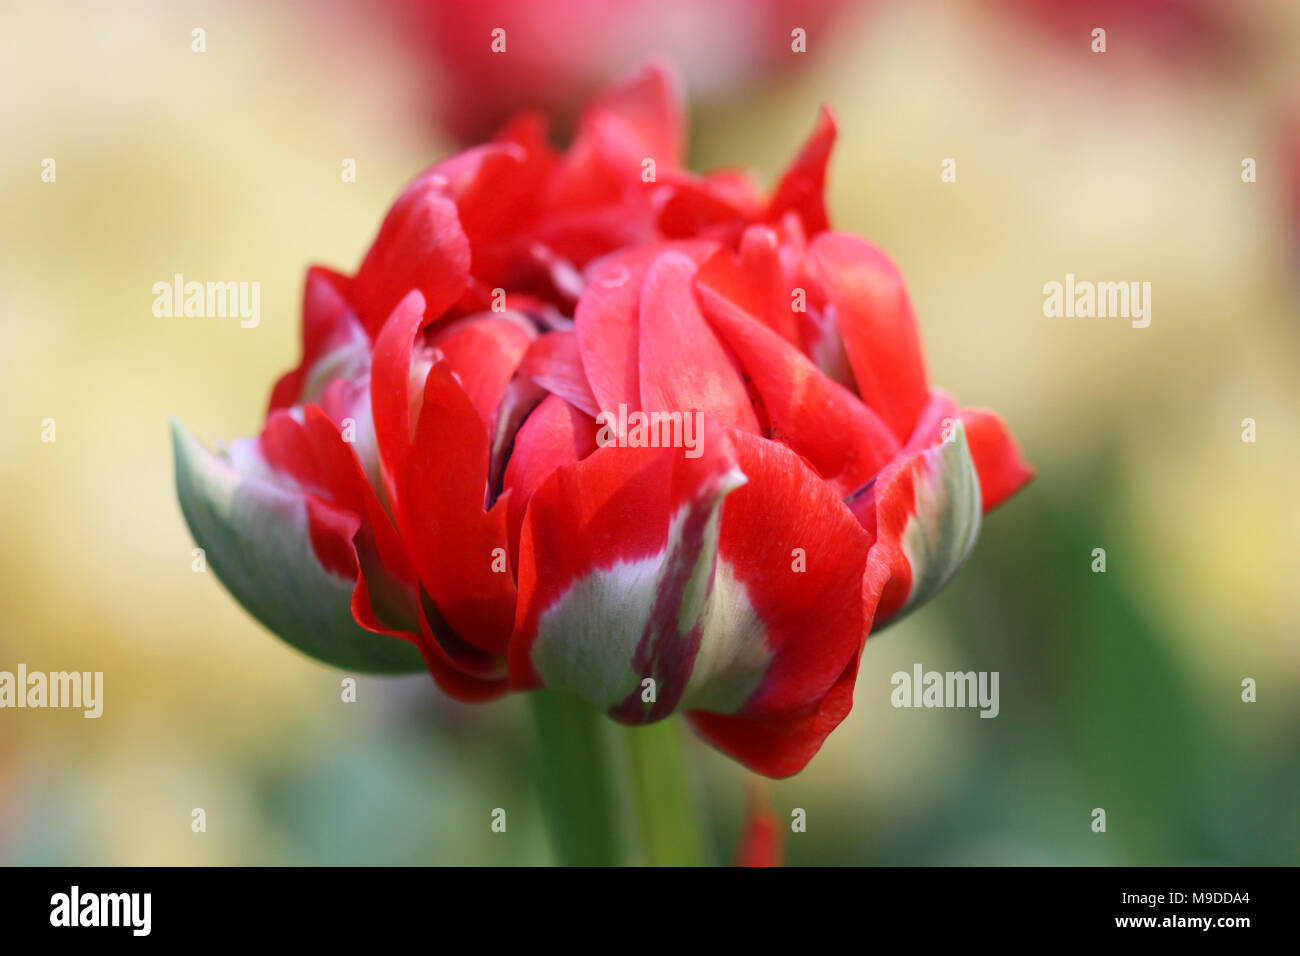 """Tulip of a grade of """"Rococo"""" a close up horizontally on blurring a background.Liliaceae Family. Tulipa. Stock Photo"""